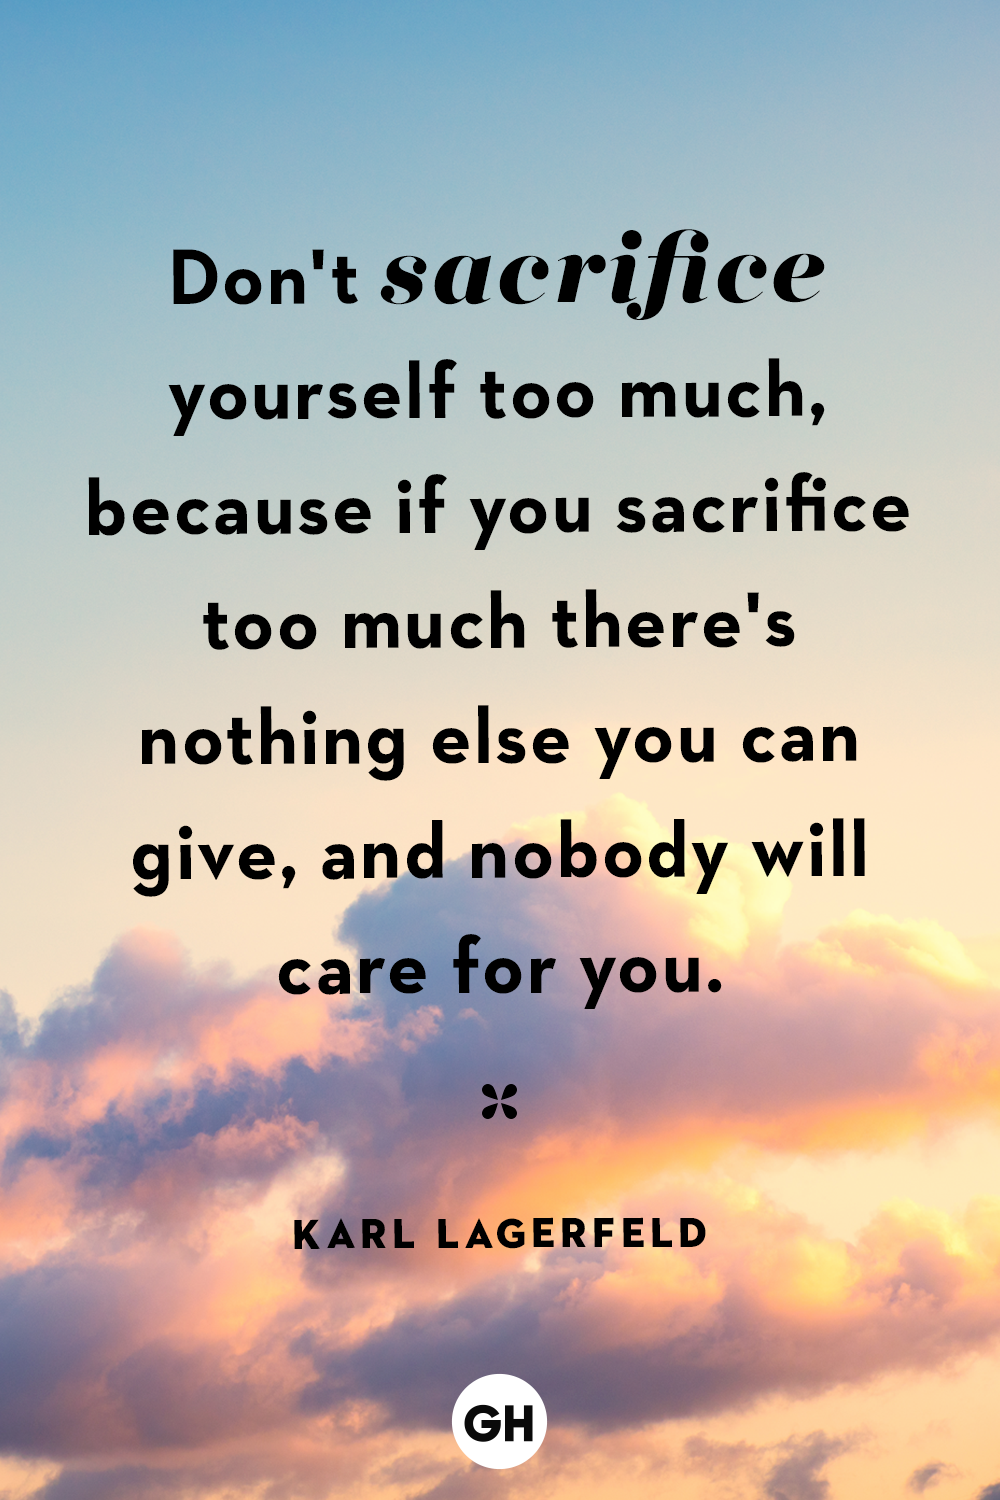 30 Self-Care Quotes That Inspire Us - Take Care of Yourself Quotes